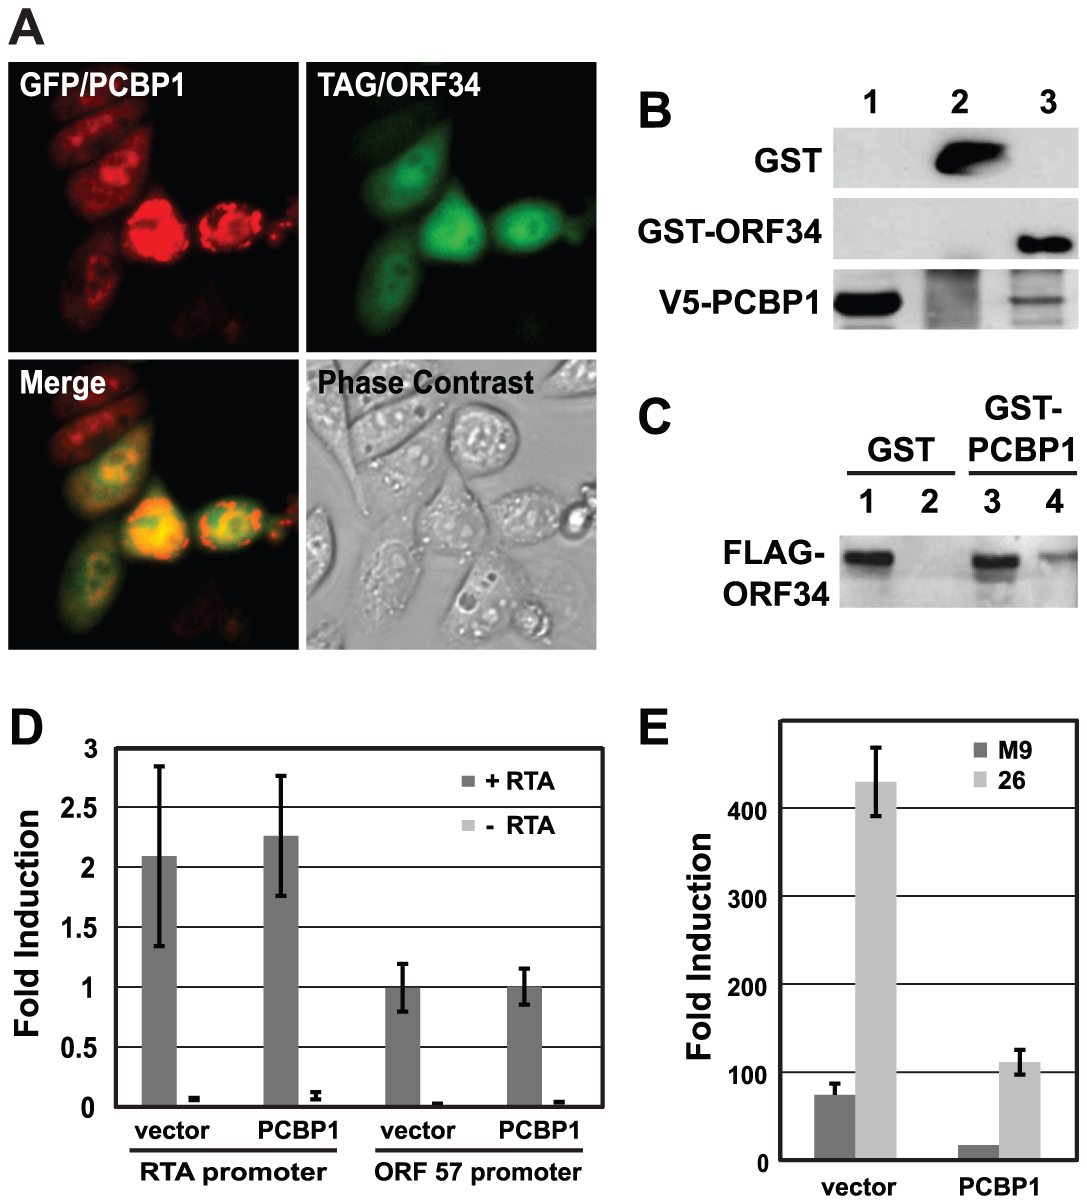 PCBP1 interacts with ORF34 in mammalian cells and negatively regulates late gene expression.